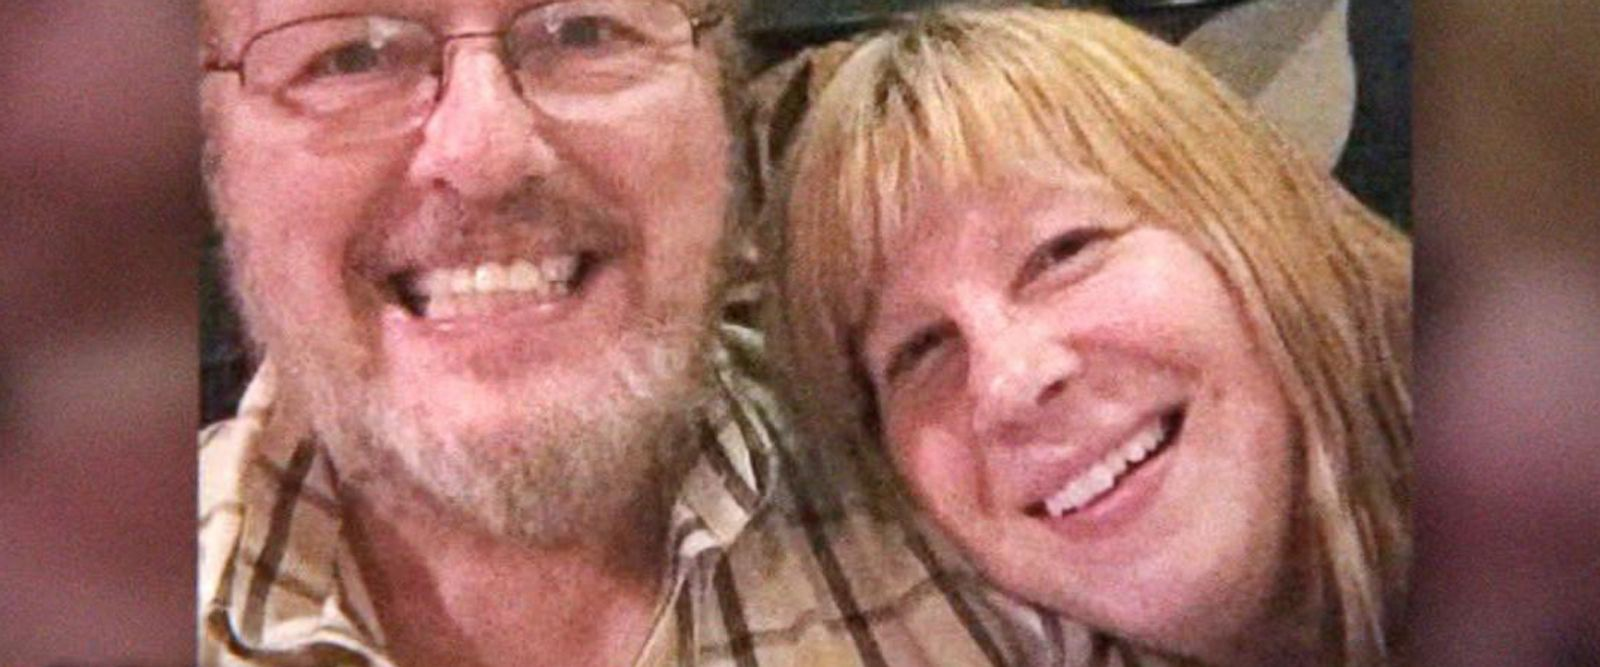 VIDEO: Killer clown suspect's husband insists she's 'falsely accused' of murder: Part 6